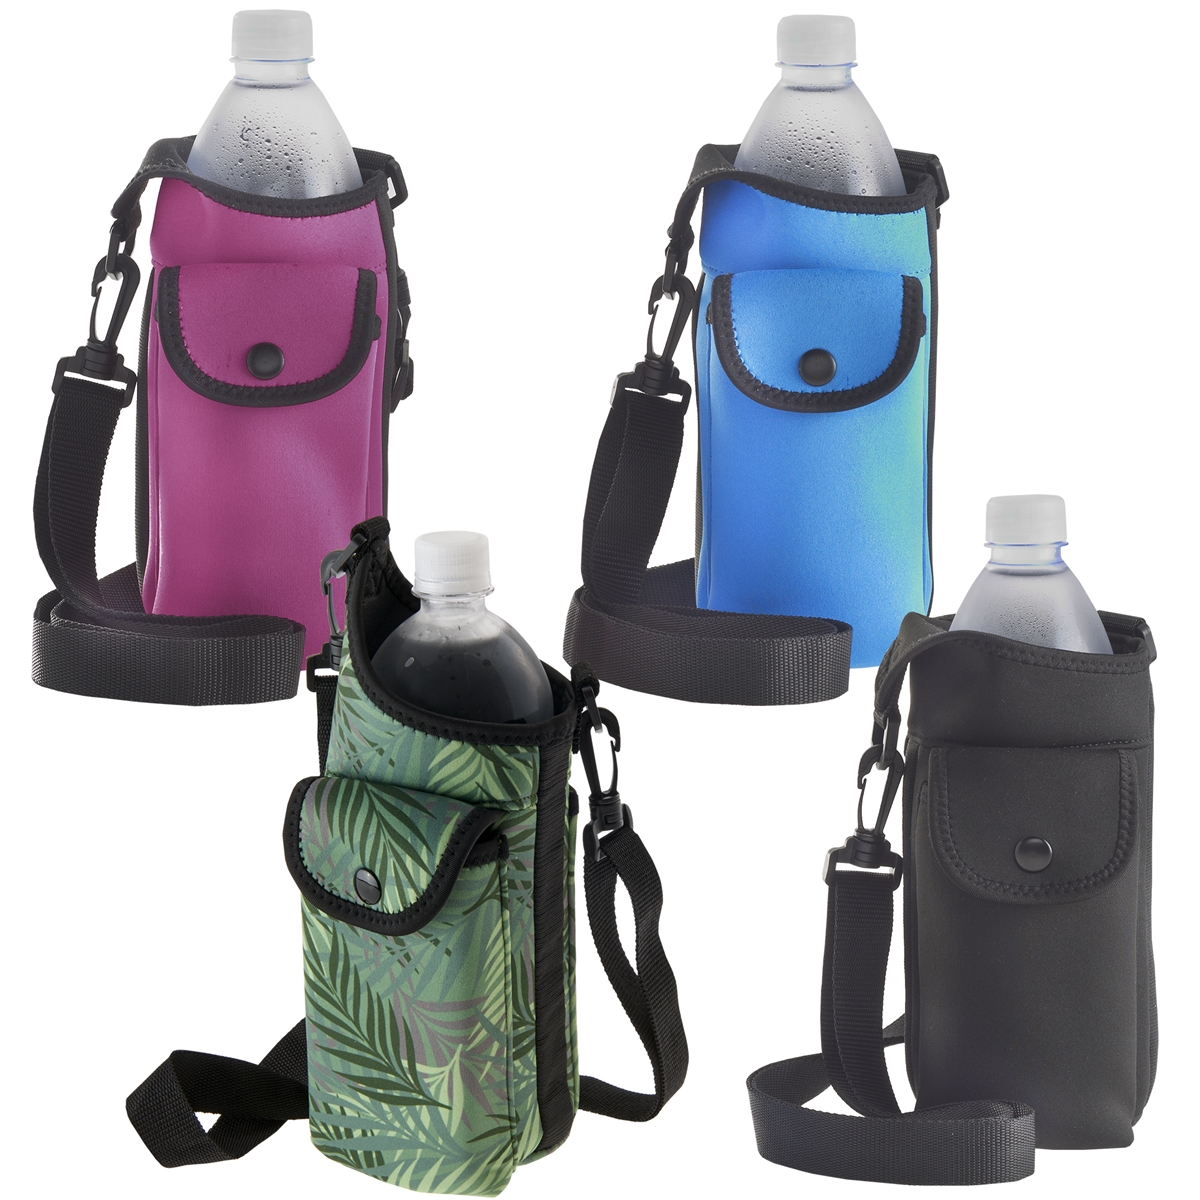 Smooth Trip AquaPockets Neoprene Water Bottle Holder with Adjustable Strap and Phone Case